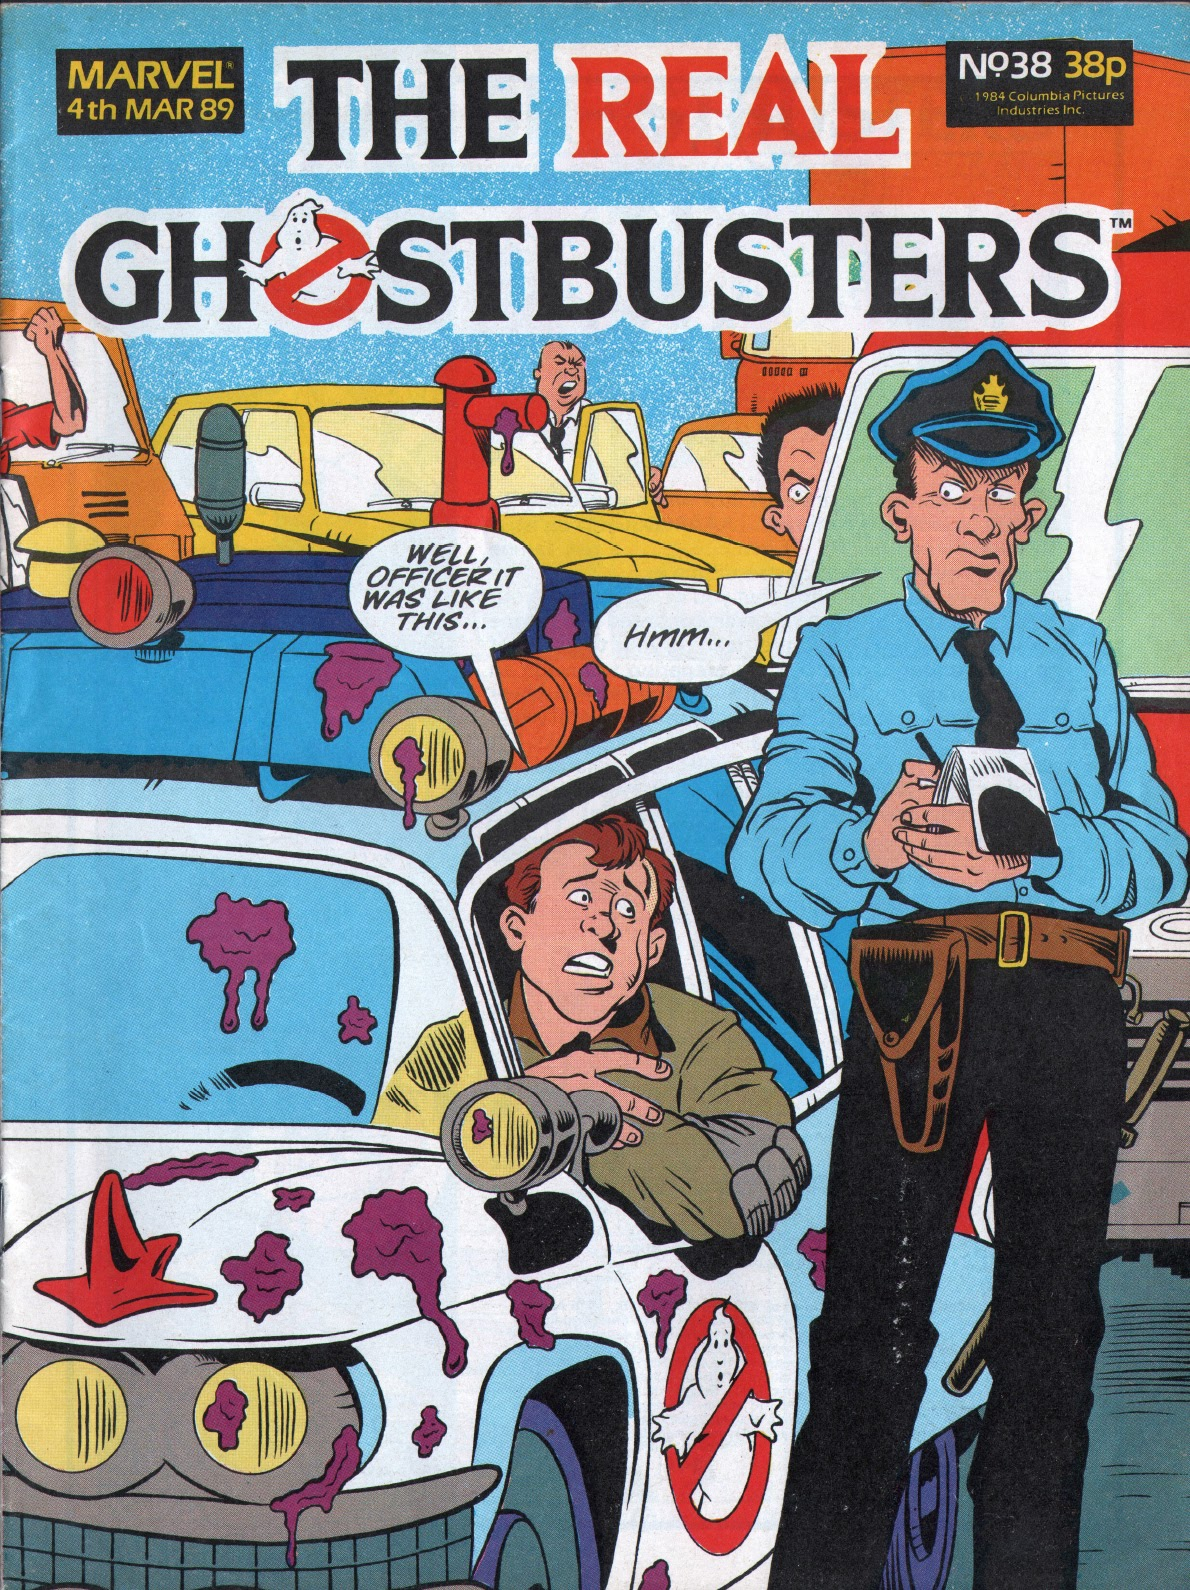 The Real Ghostbusters 38 Page 1